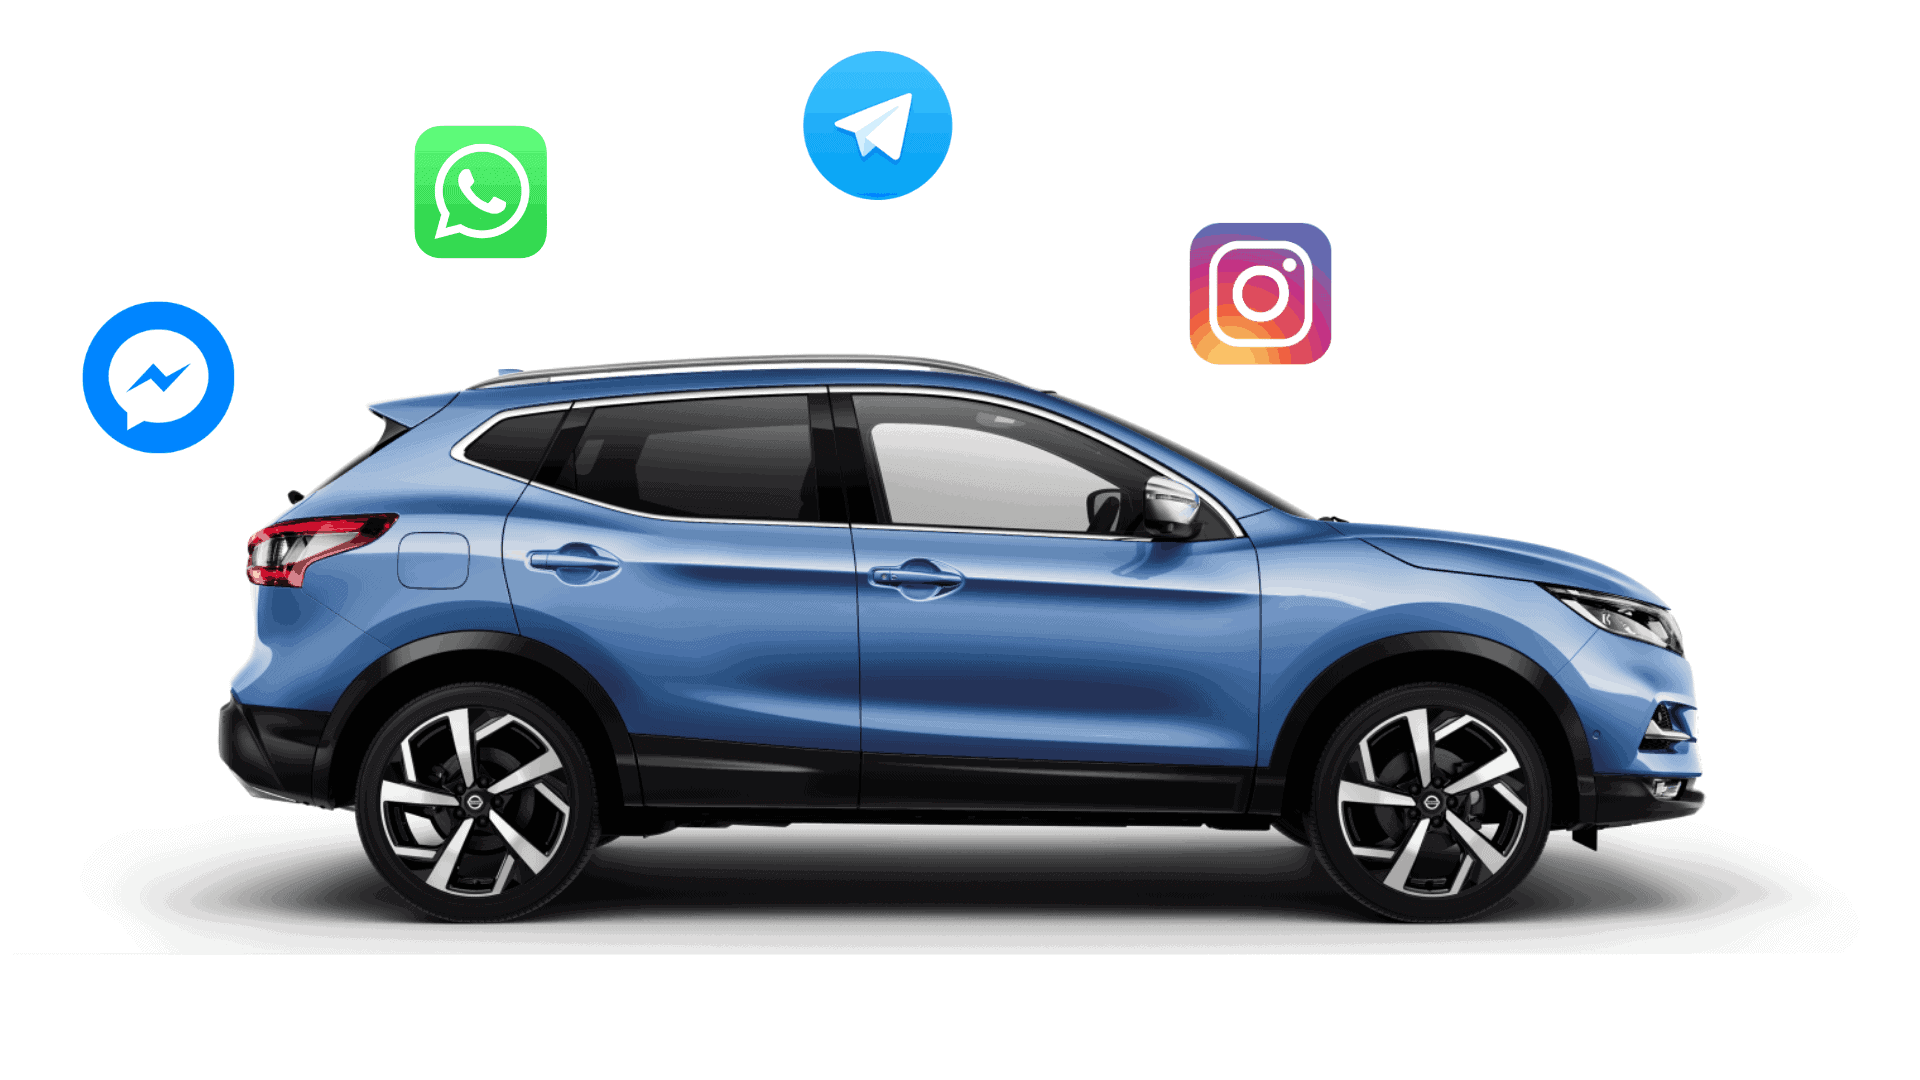 Help Desk WhatsApp & Messengers for Automotive